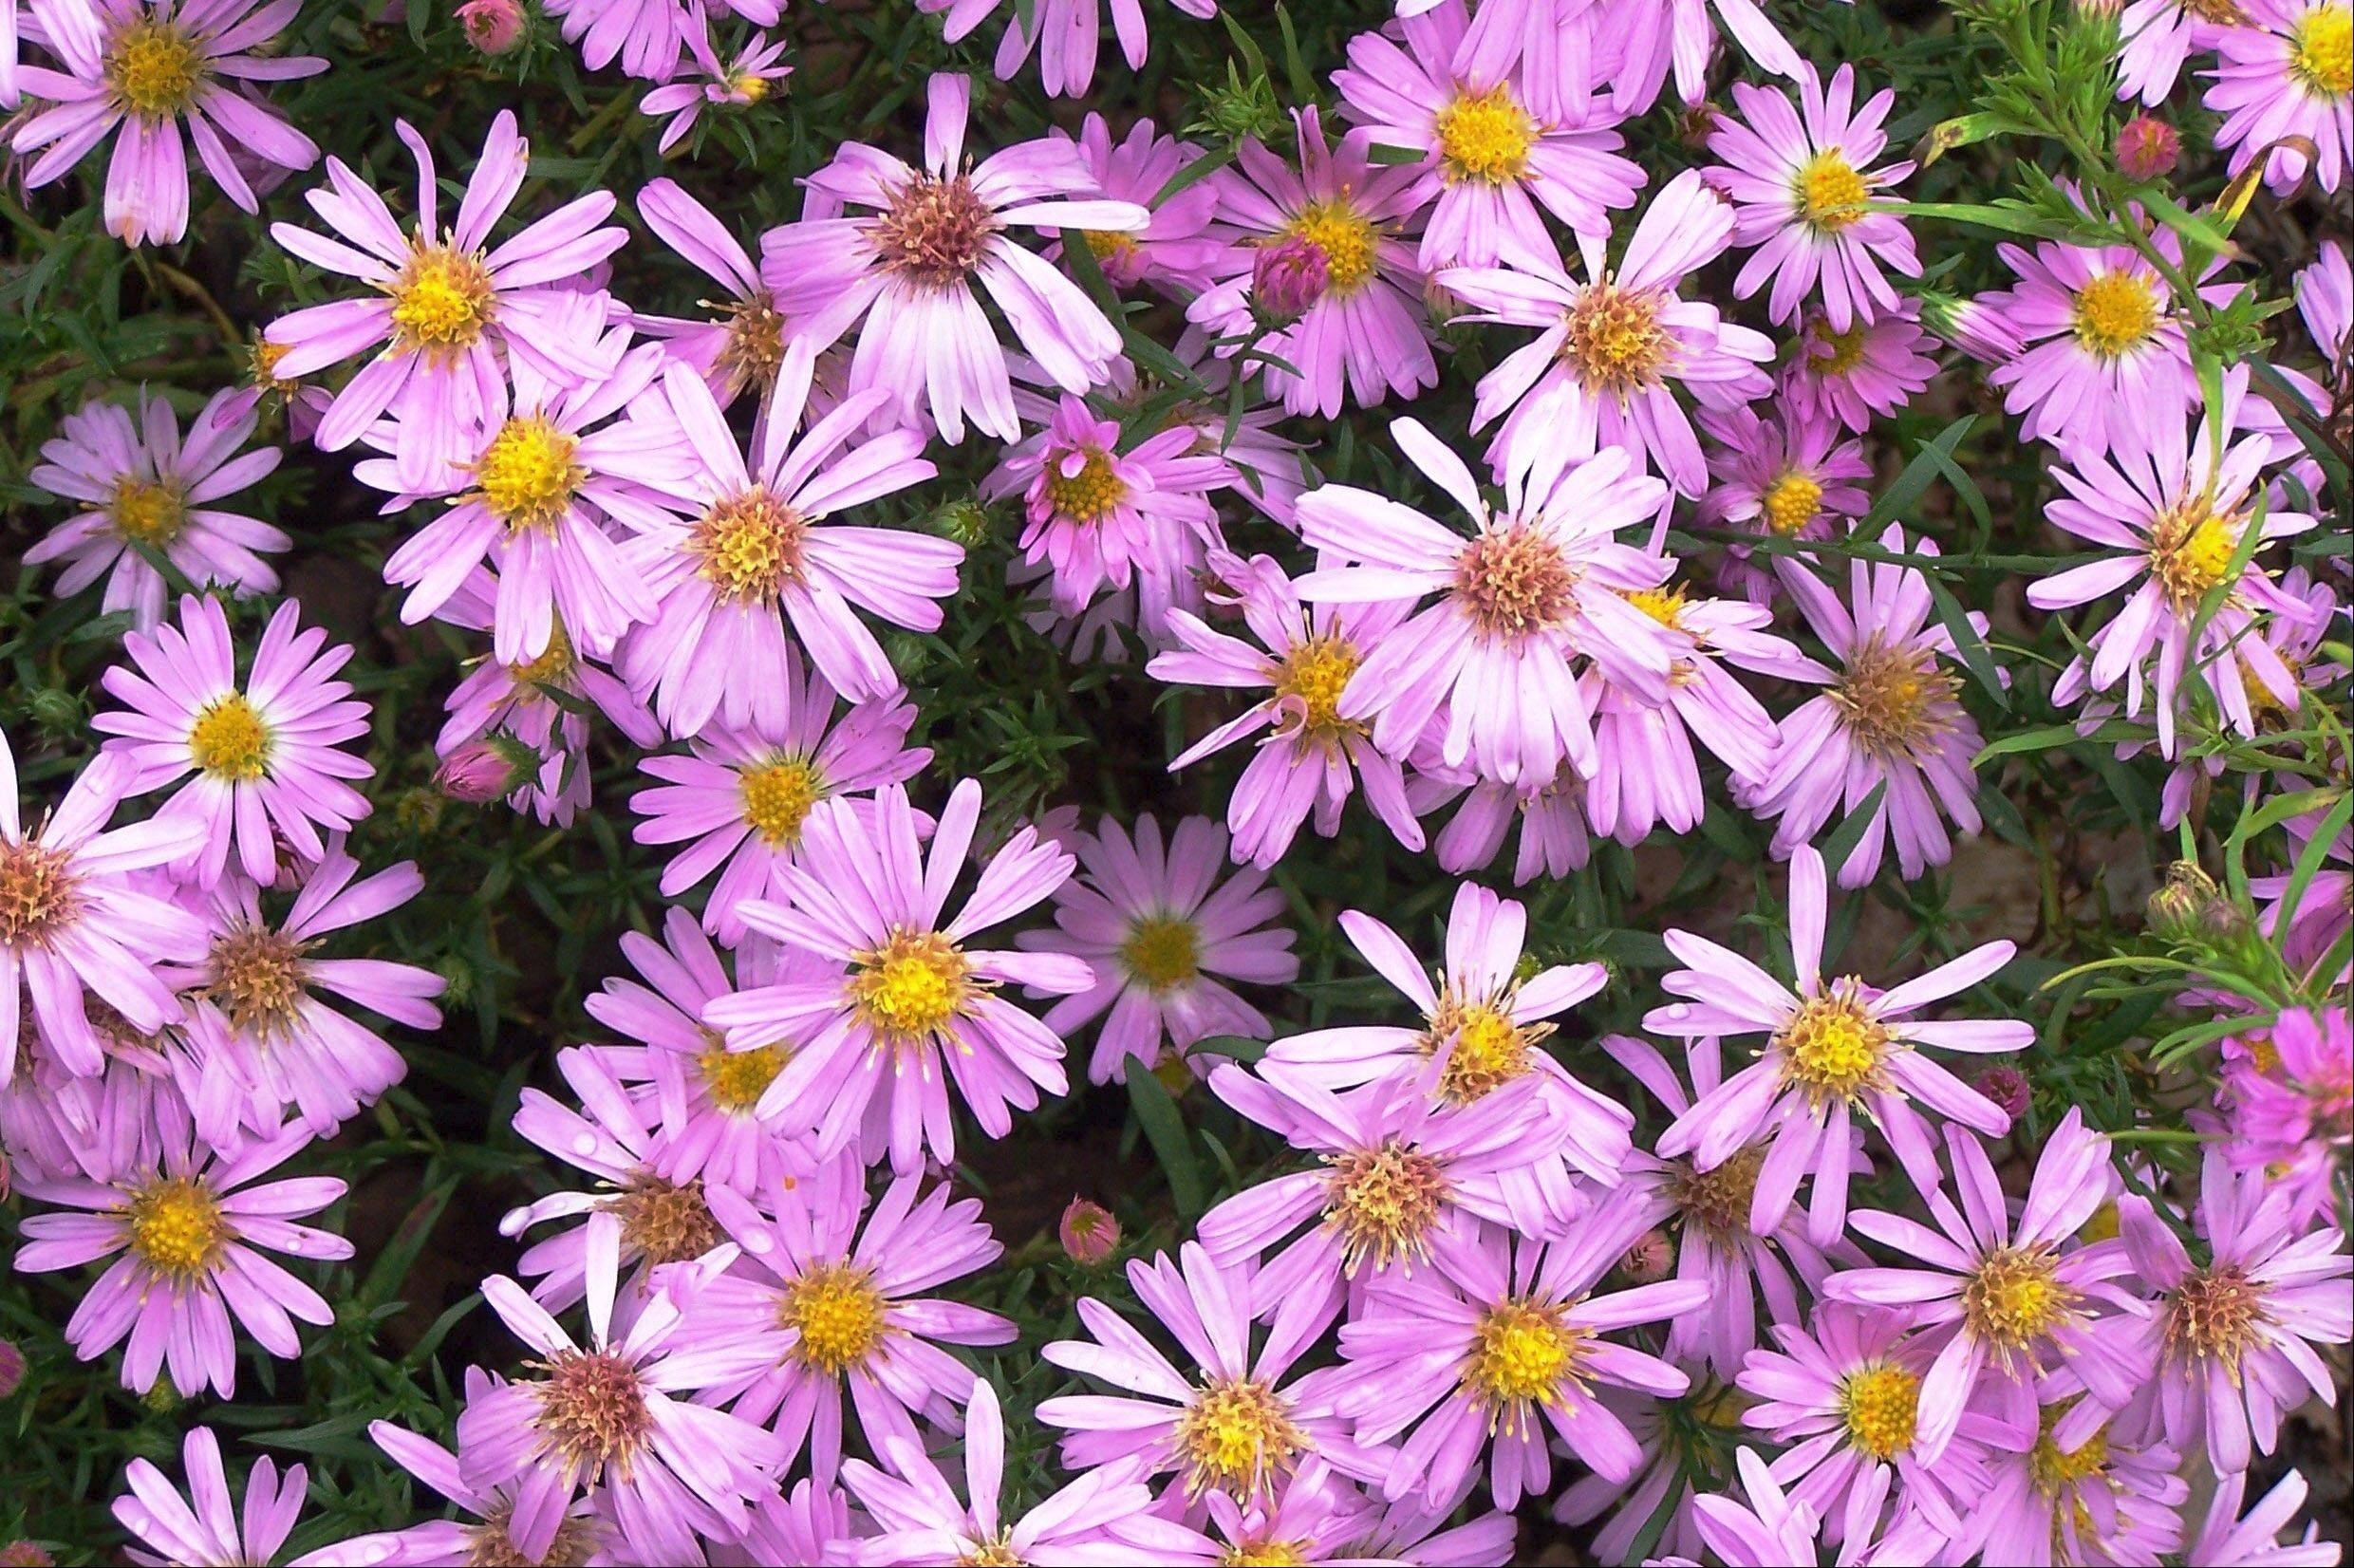 The pink daisy-like flowers of asters fill the fall garden with color.